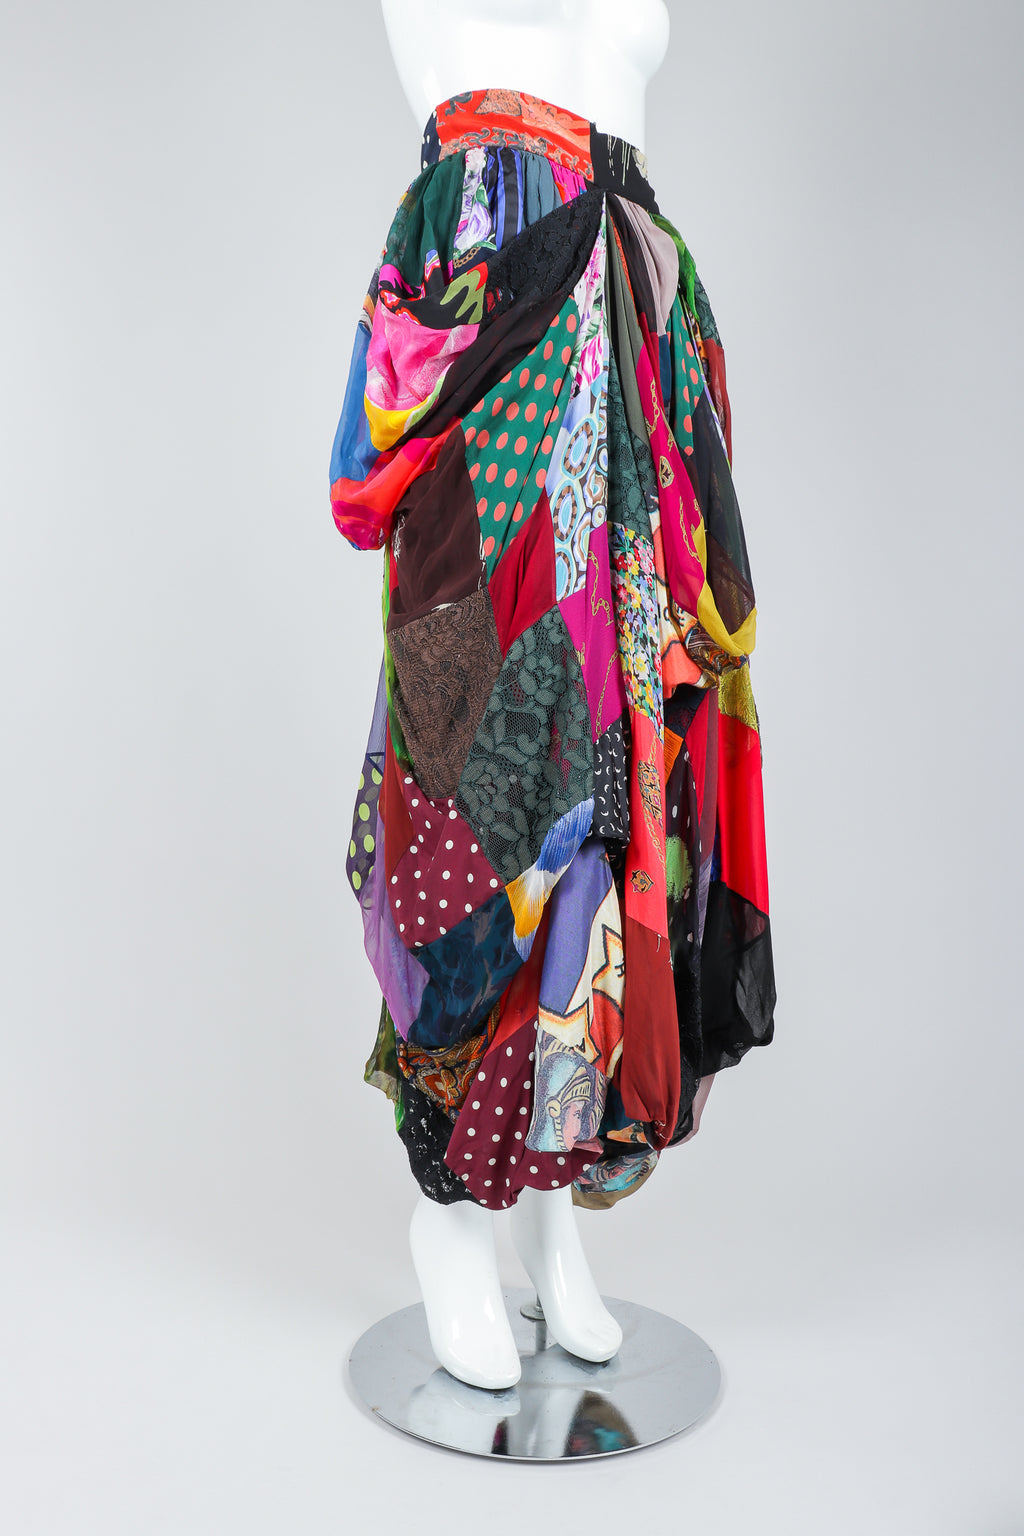 Recess Vintage Dolce & Gabbana Rainbow Silk Patchwork Skirt on Mannequin, angled